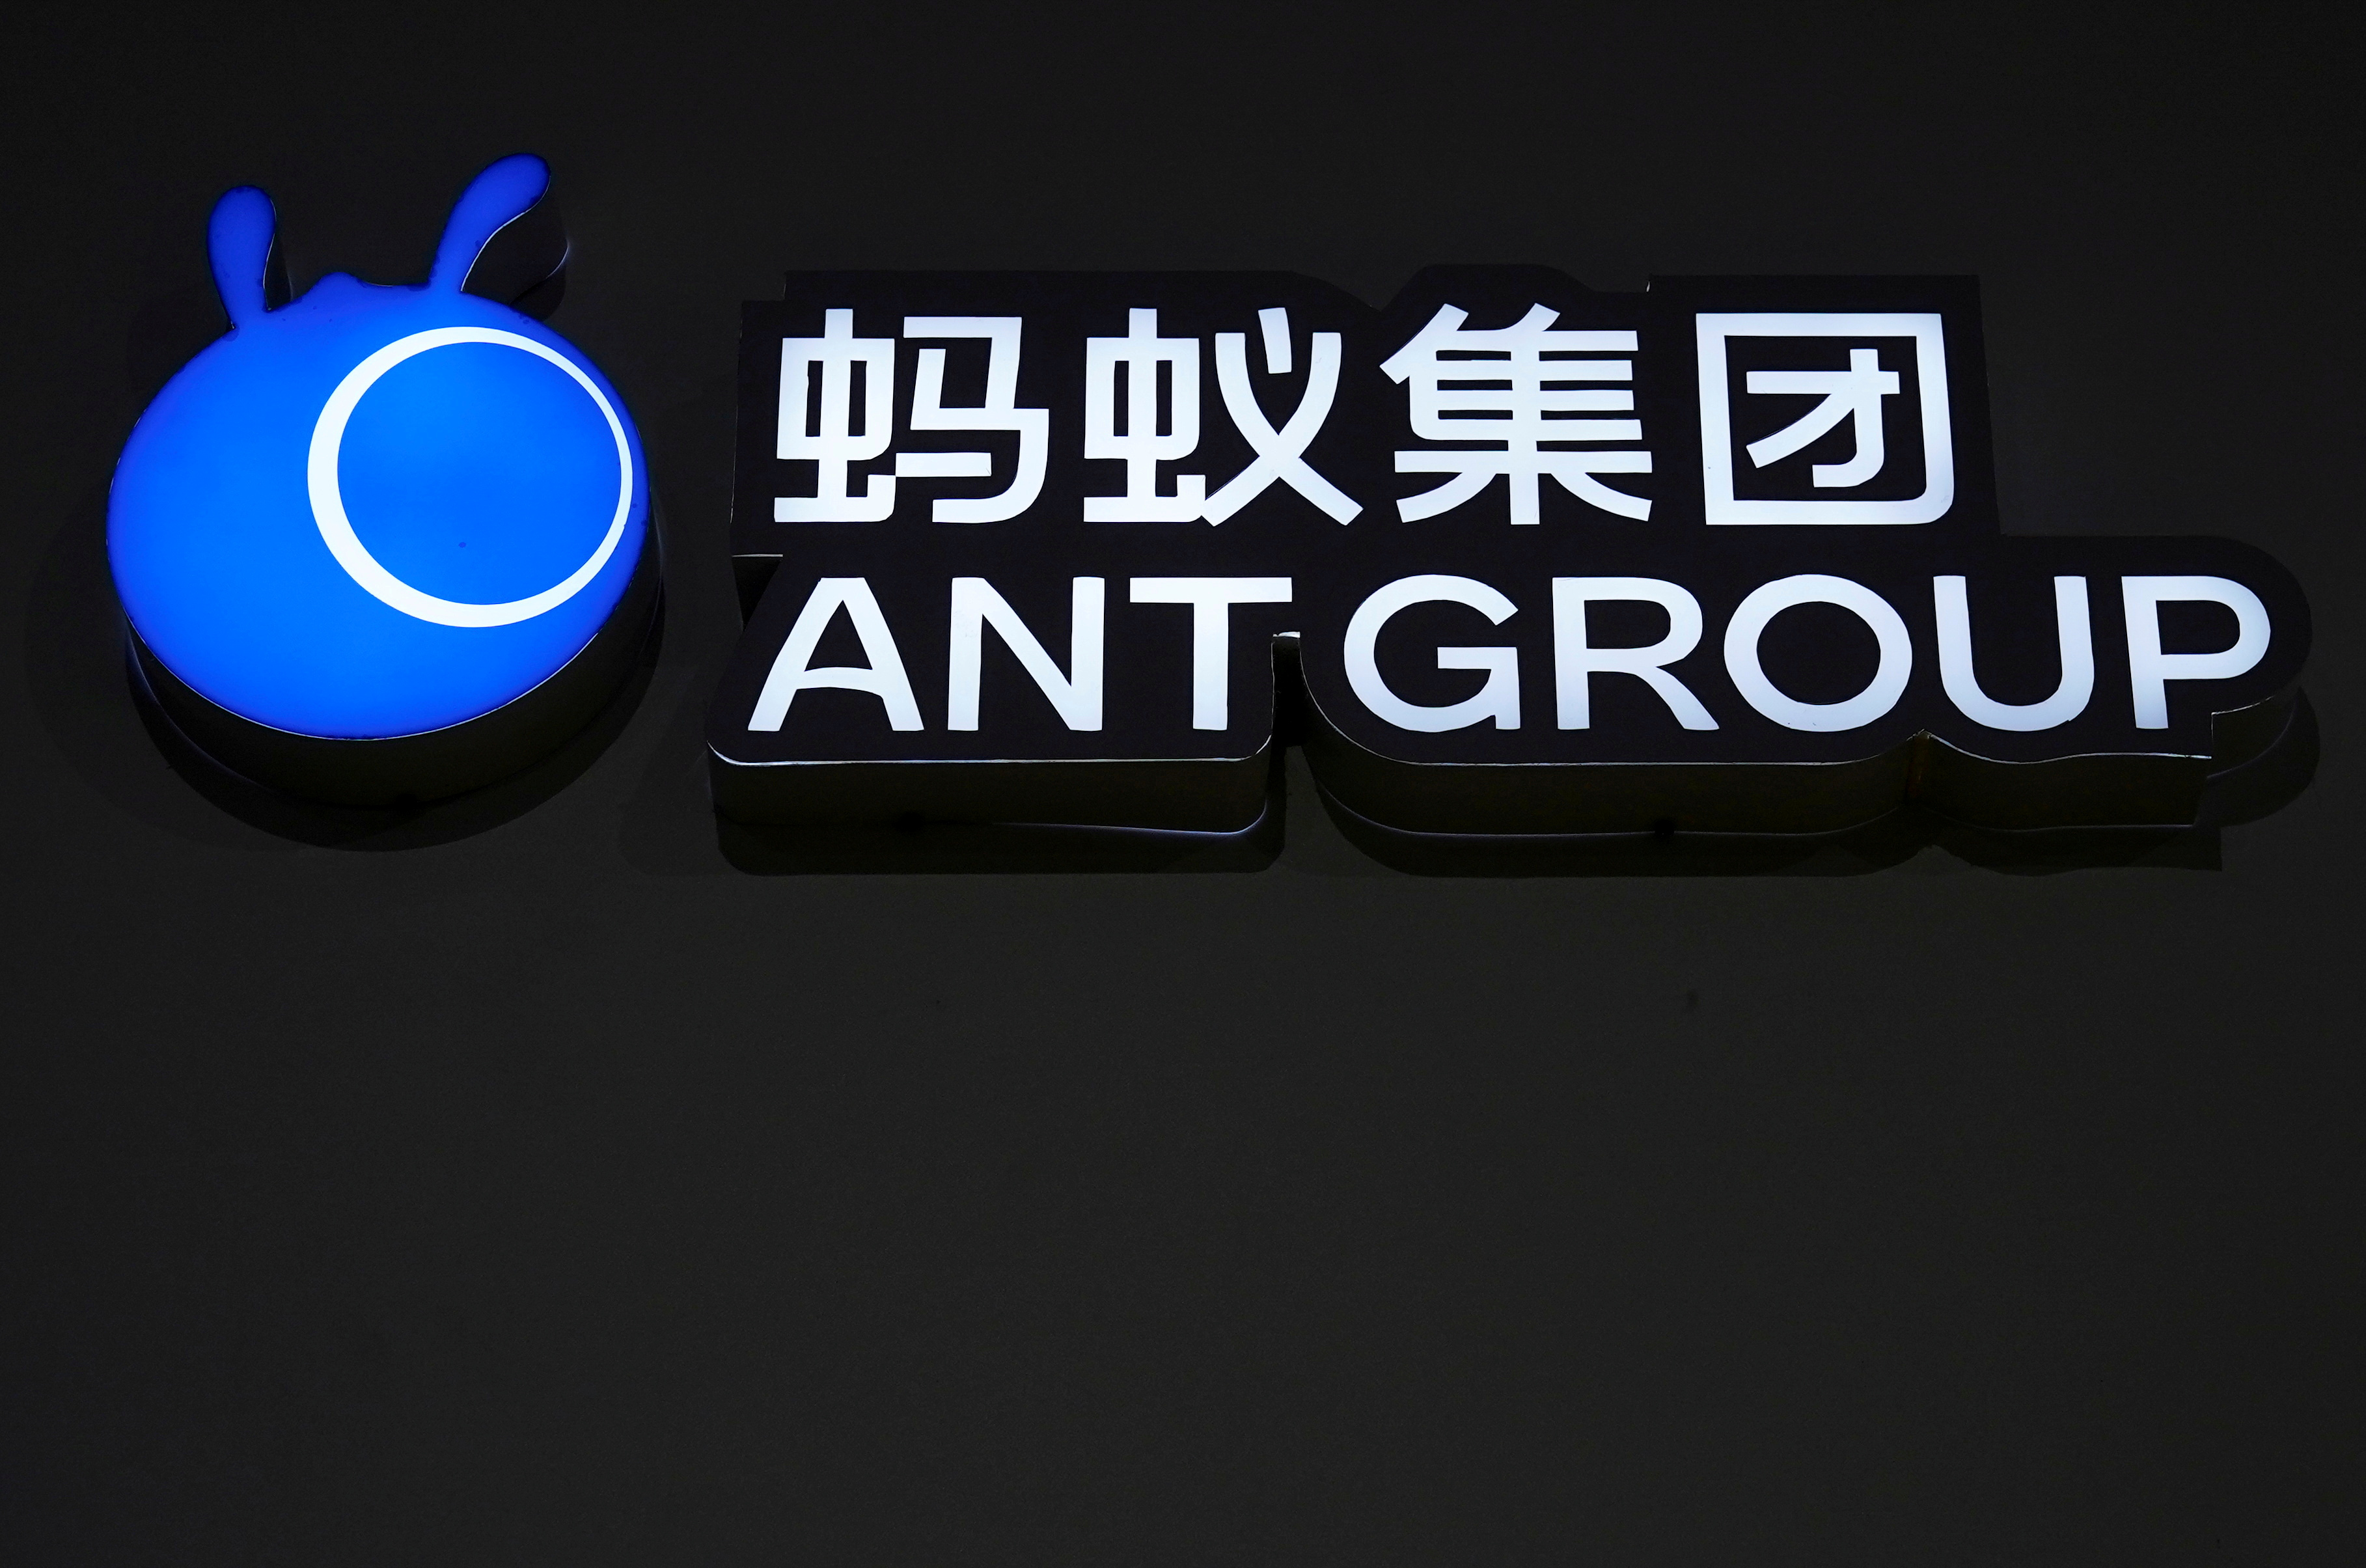 A sign of Ant Group is seen during the World Internet Conference (WIC) in Wuzhen, Zhejiang province, China, Nov. 23, 2020. REUTERS/Aly Song/File Photo